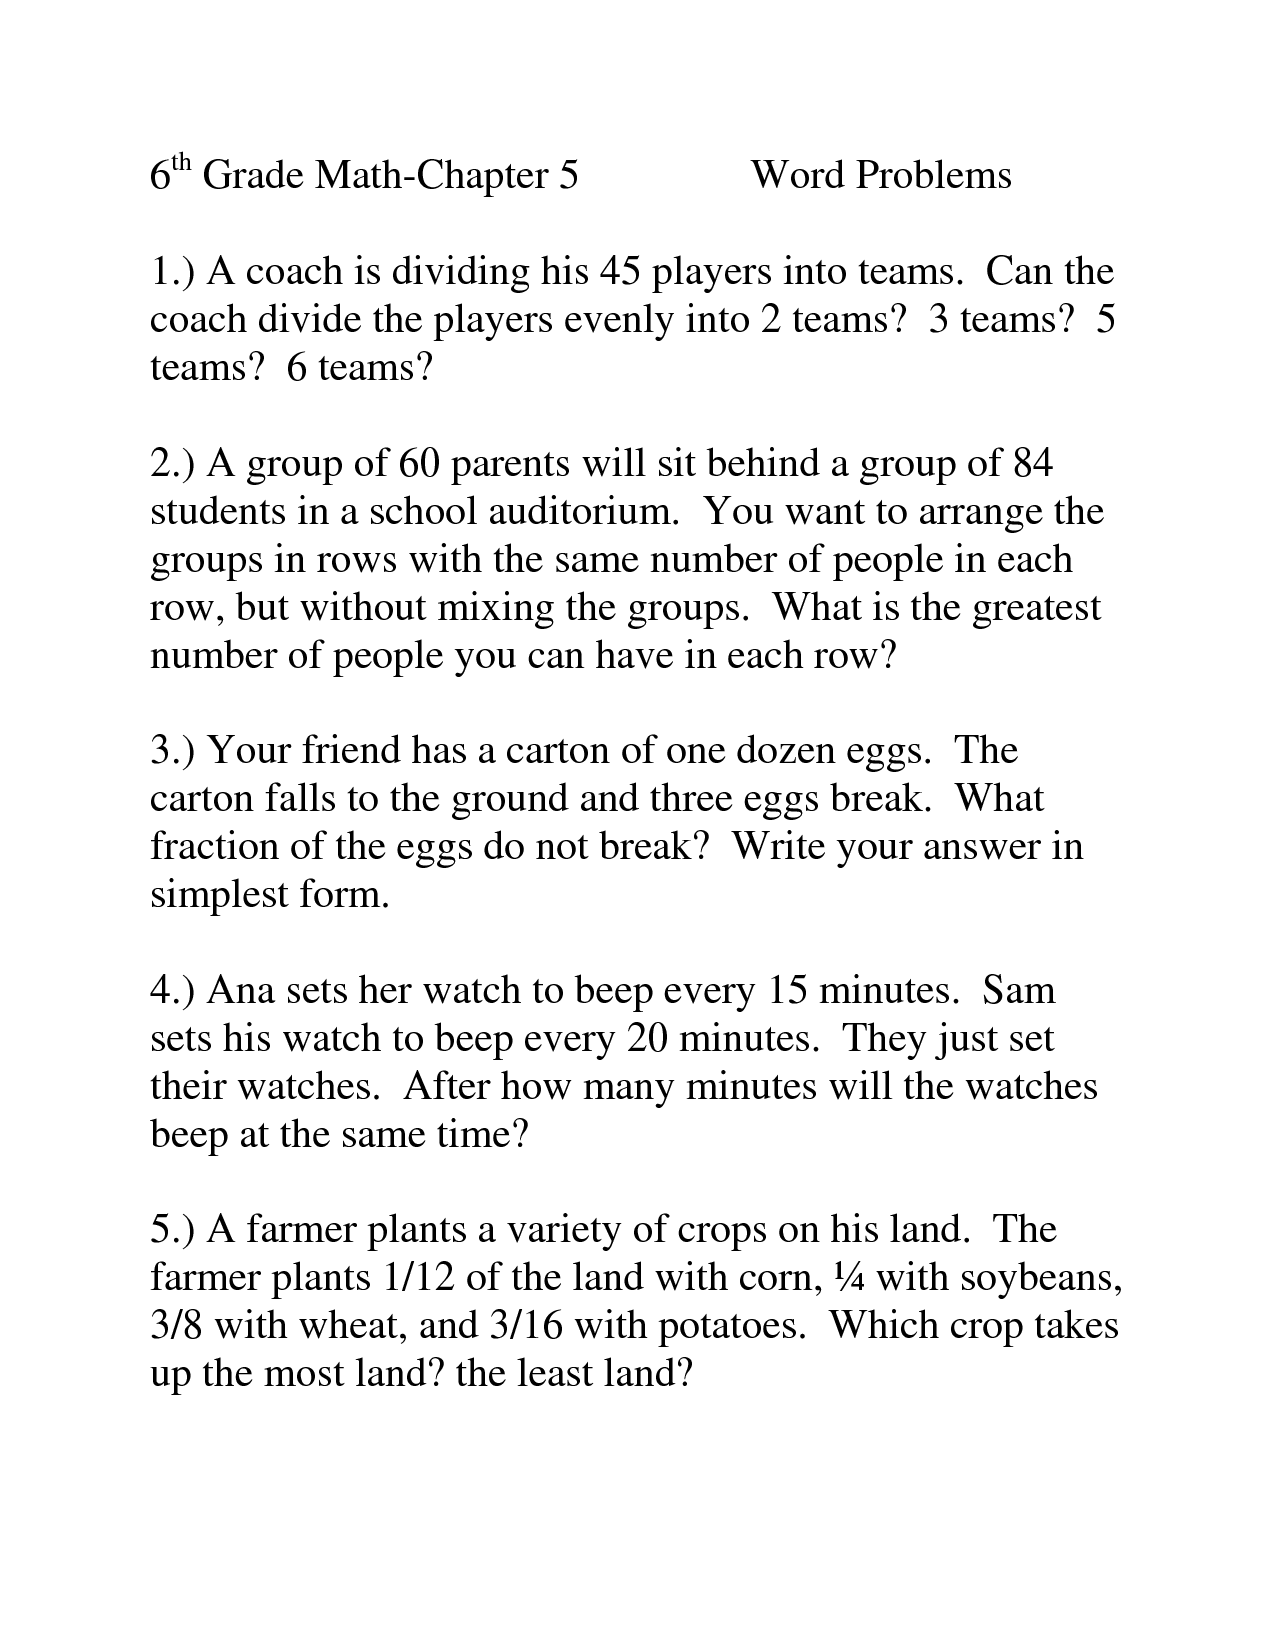 Word Problems Year 5 With Answers